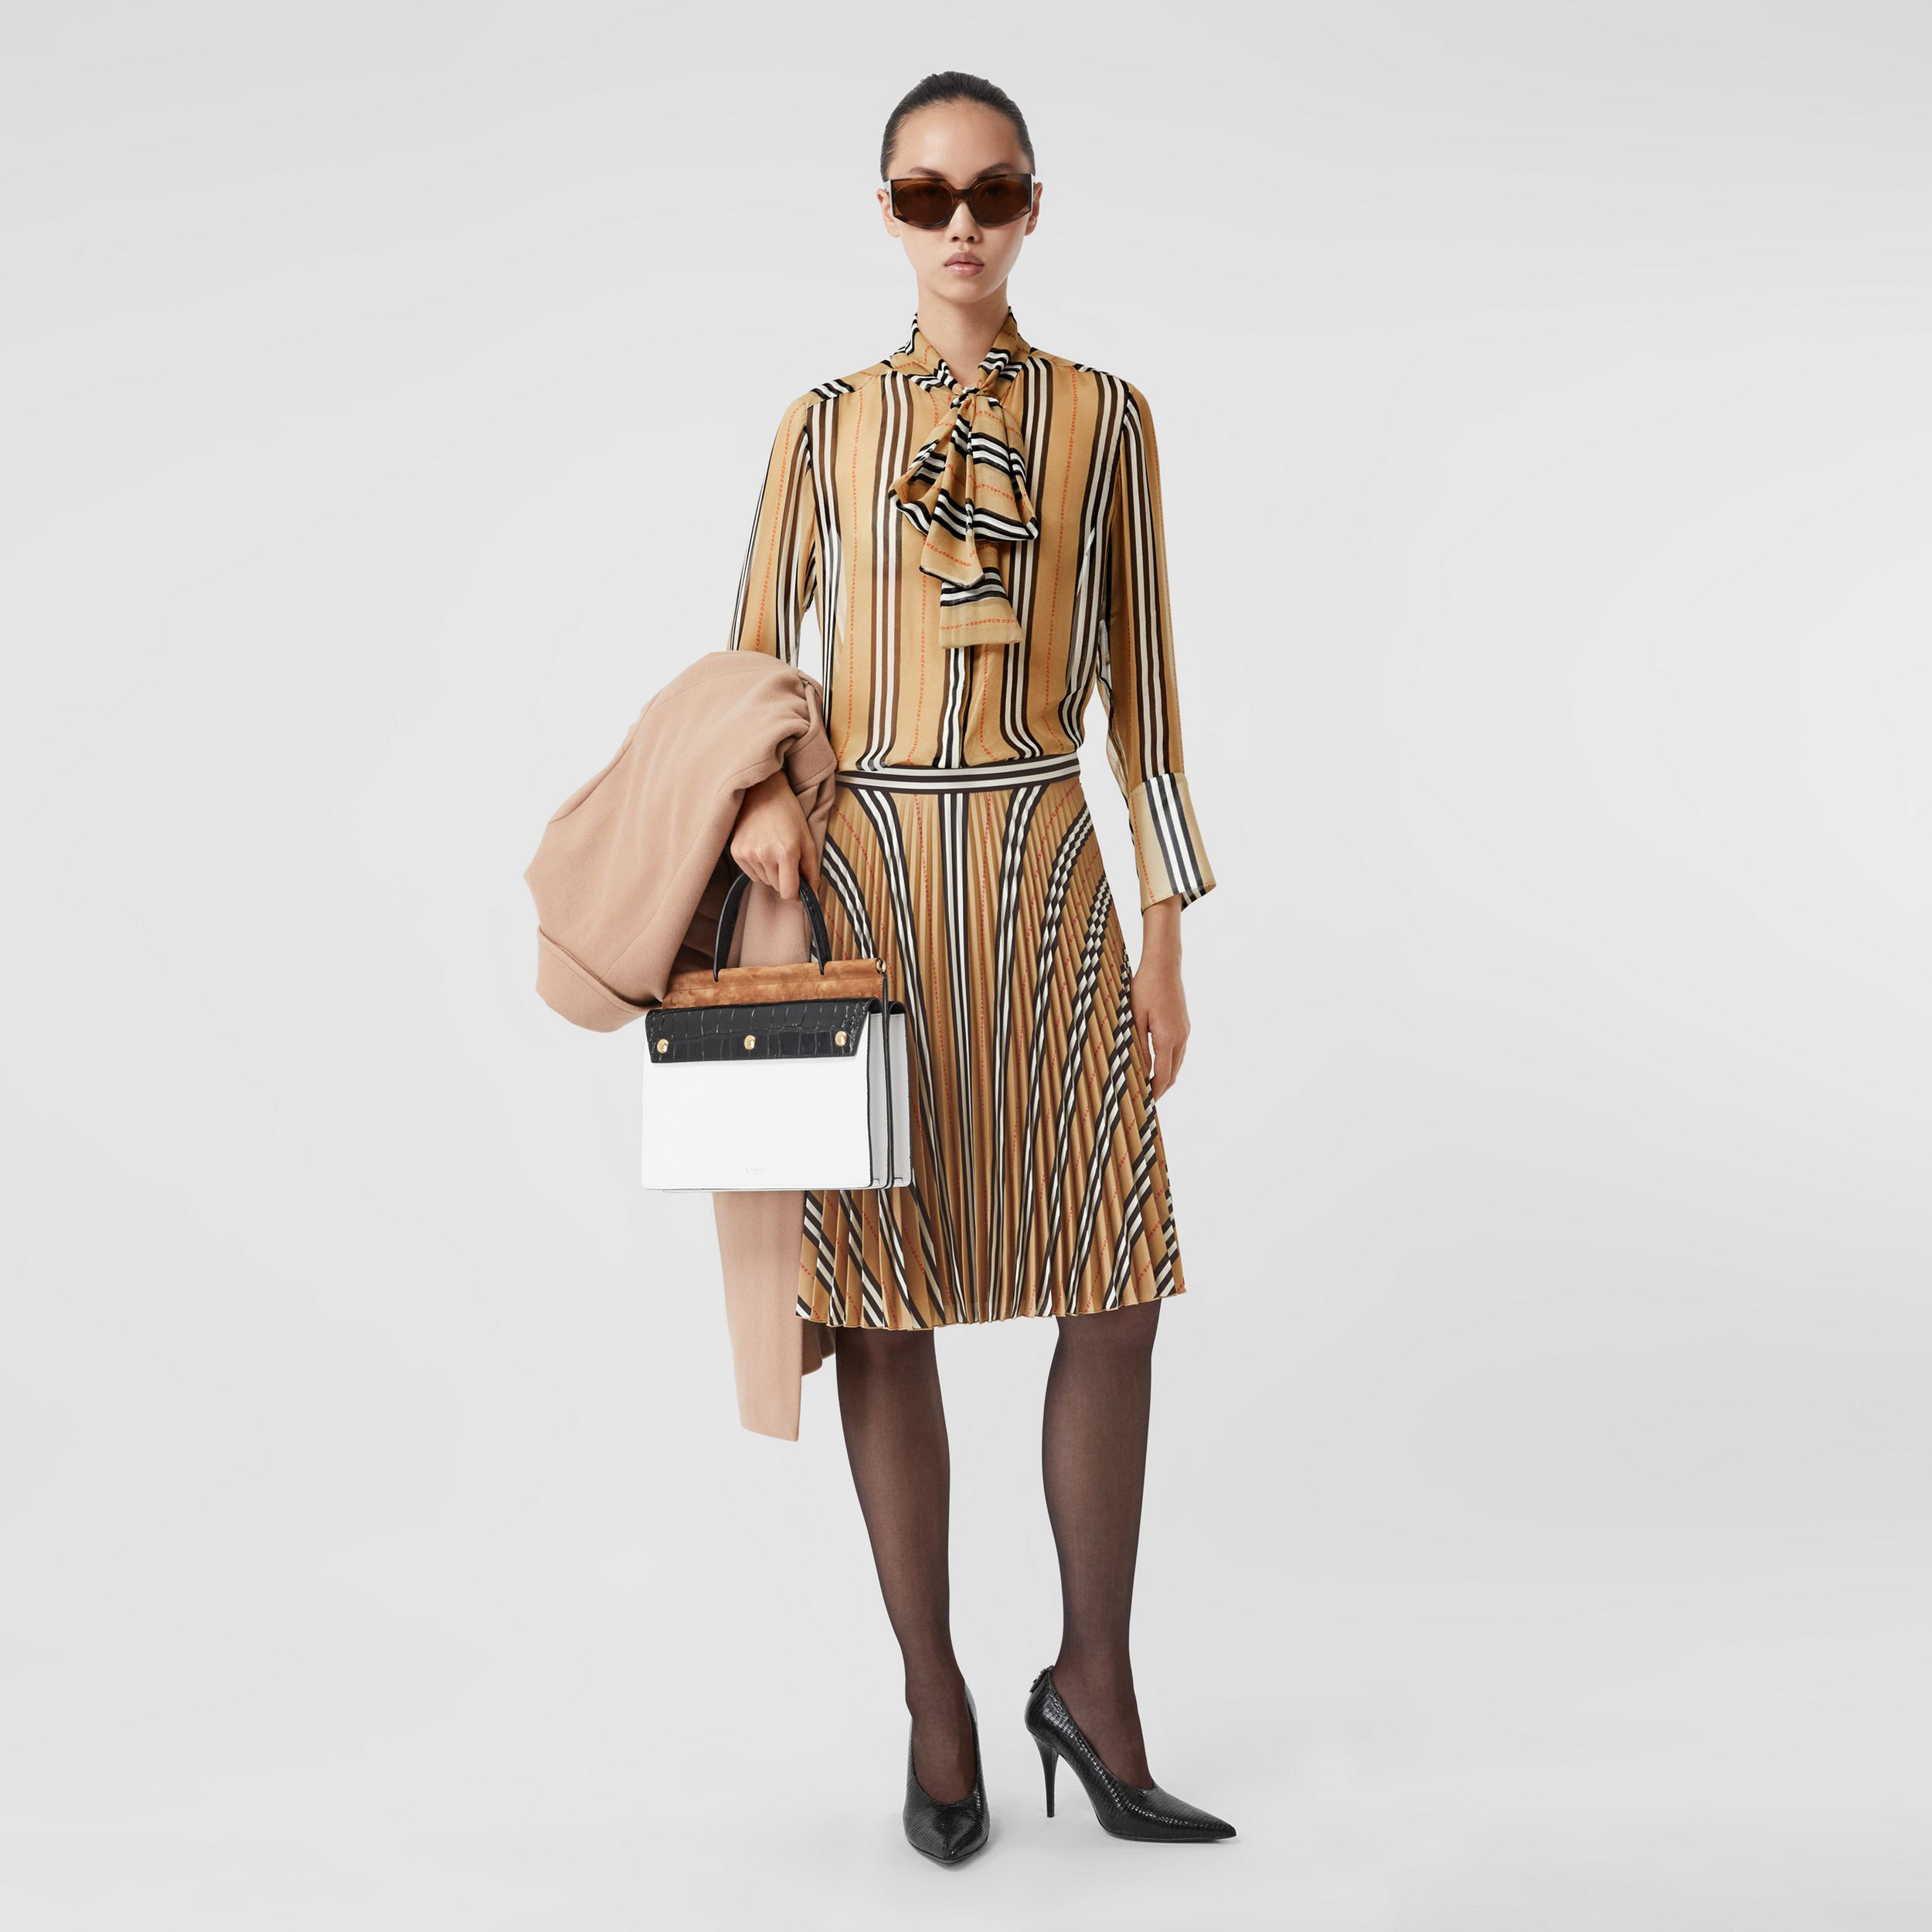 Logo and Stripe Print Crepe Pleated Skirt in Archive Beige - Women | Burberry Hong Kong S.A.R - 1